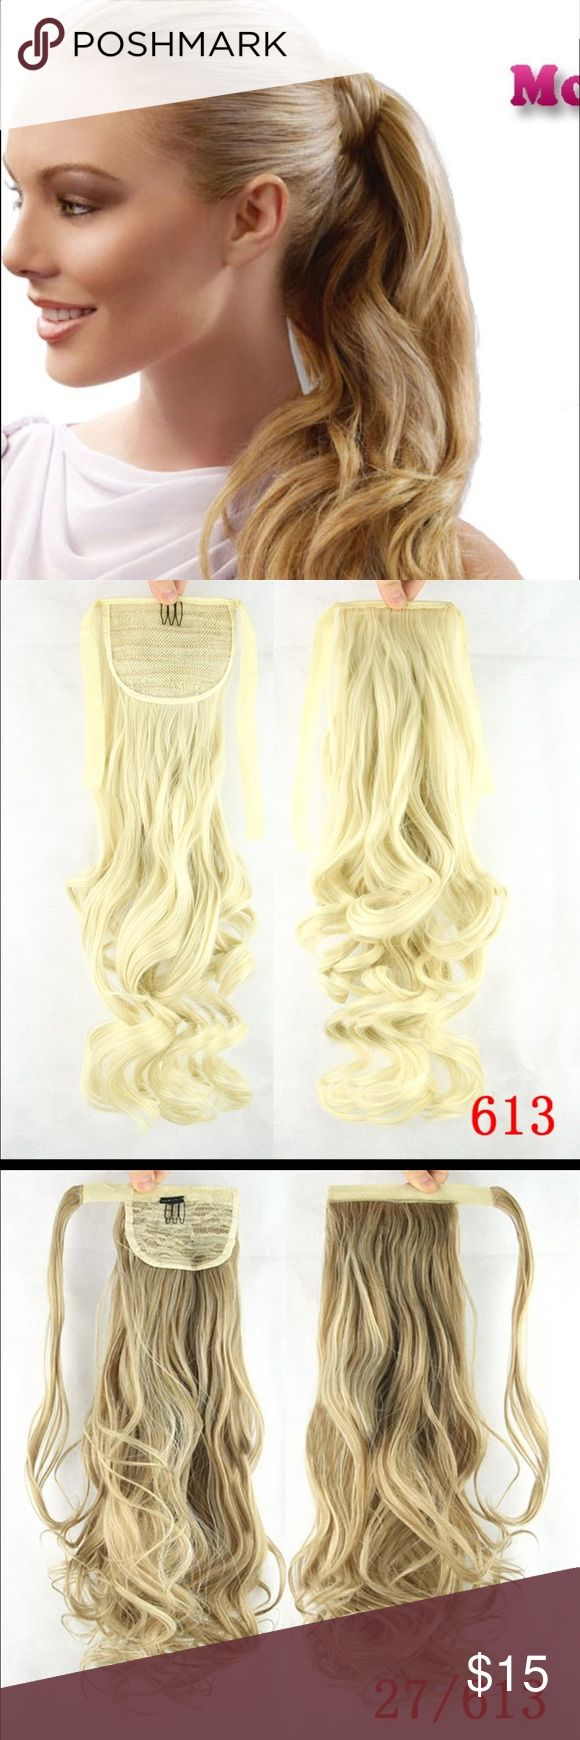 Hair Extension Ponytail Hair extension pony tail has comb for support along with ribbon tie to secure, you can use heat natural feel & look 20' inch, Accessories Hair Accessories